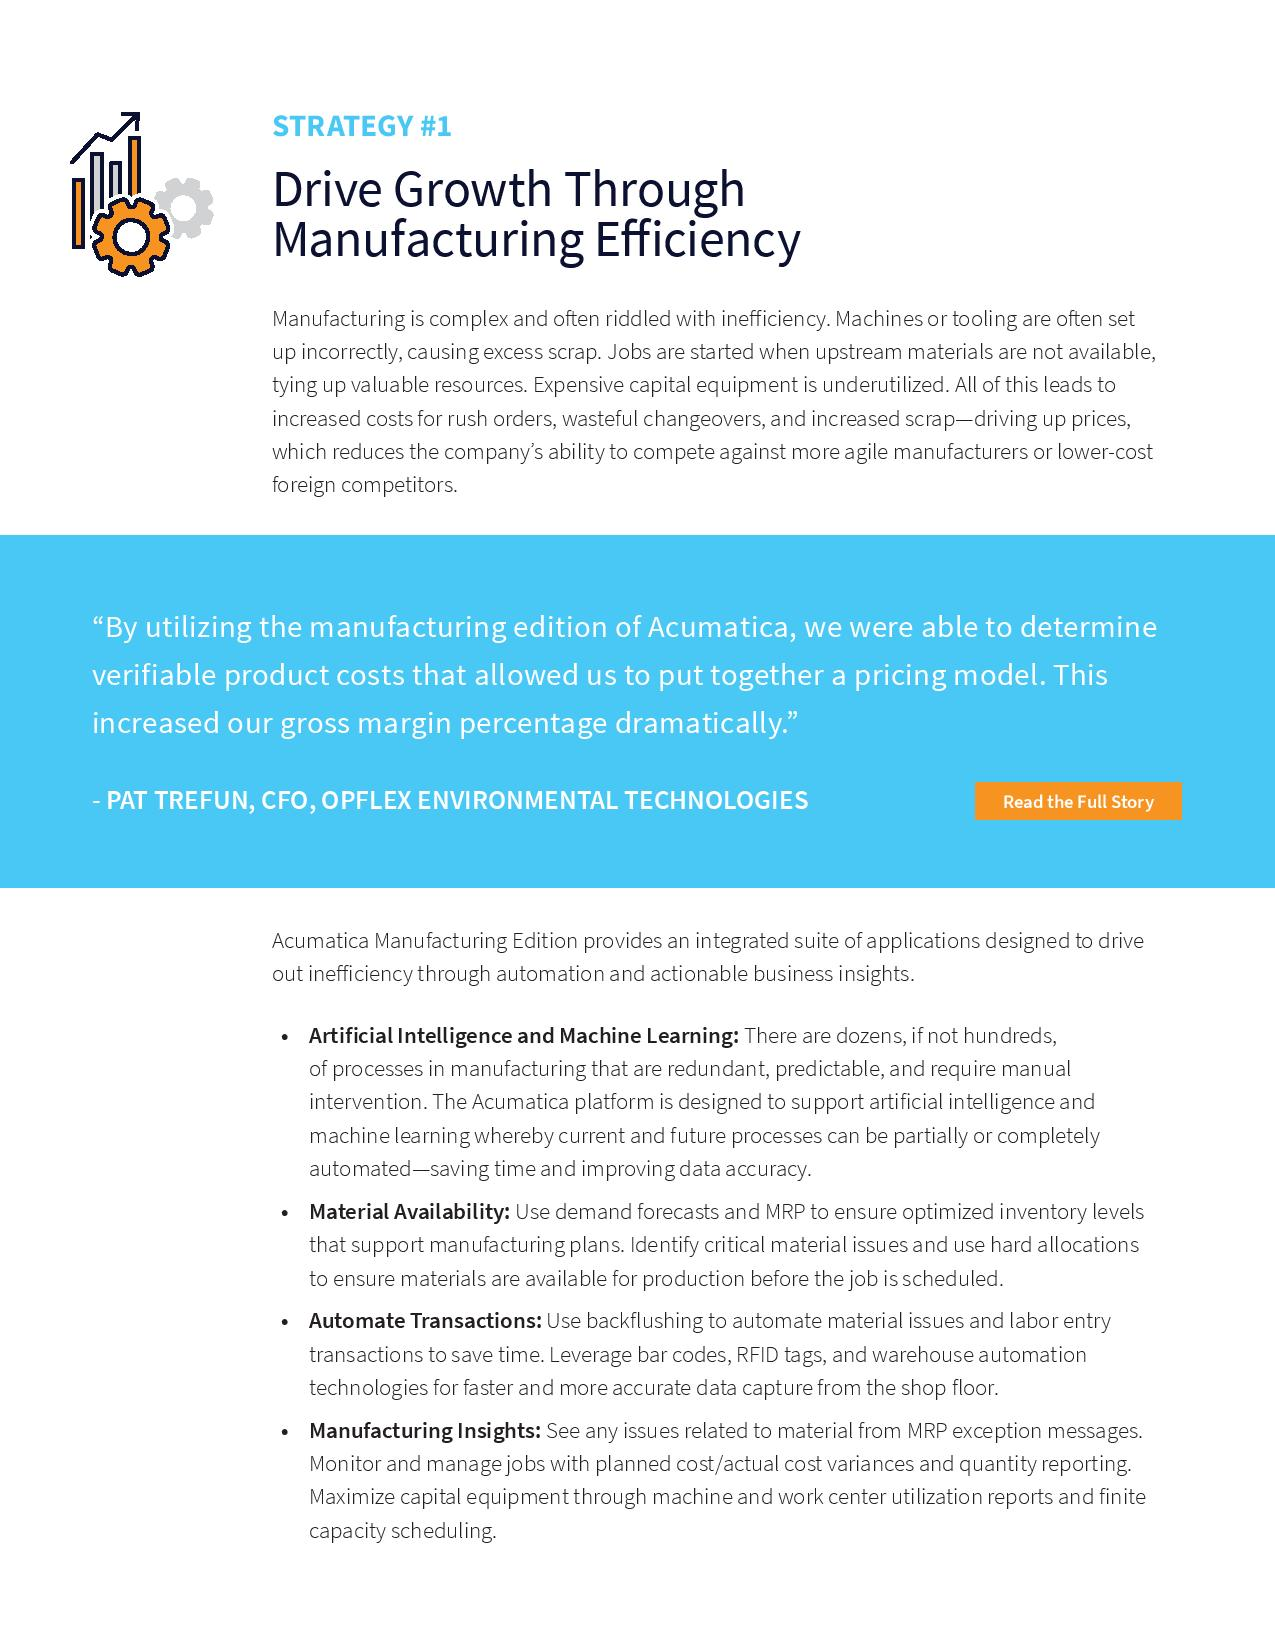 Nine Ways to Drive Manufacturing Growth in a Digital Economy, page 1